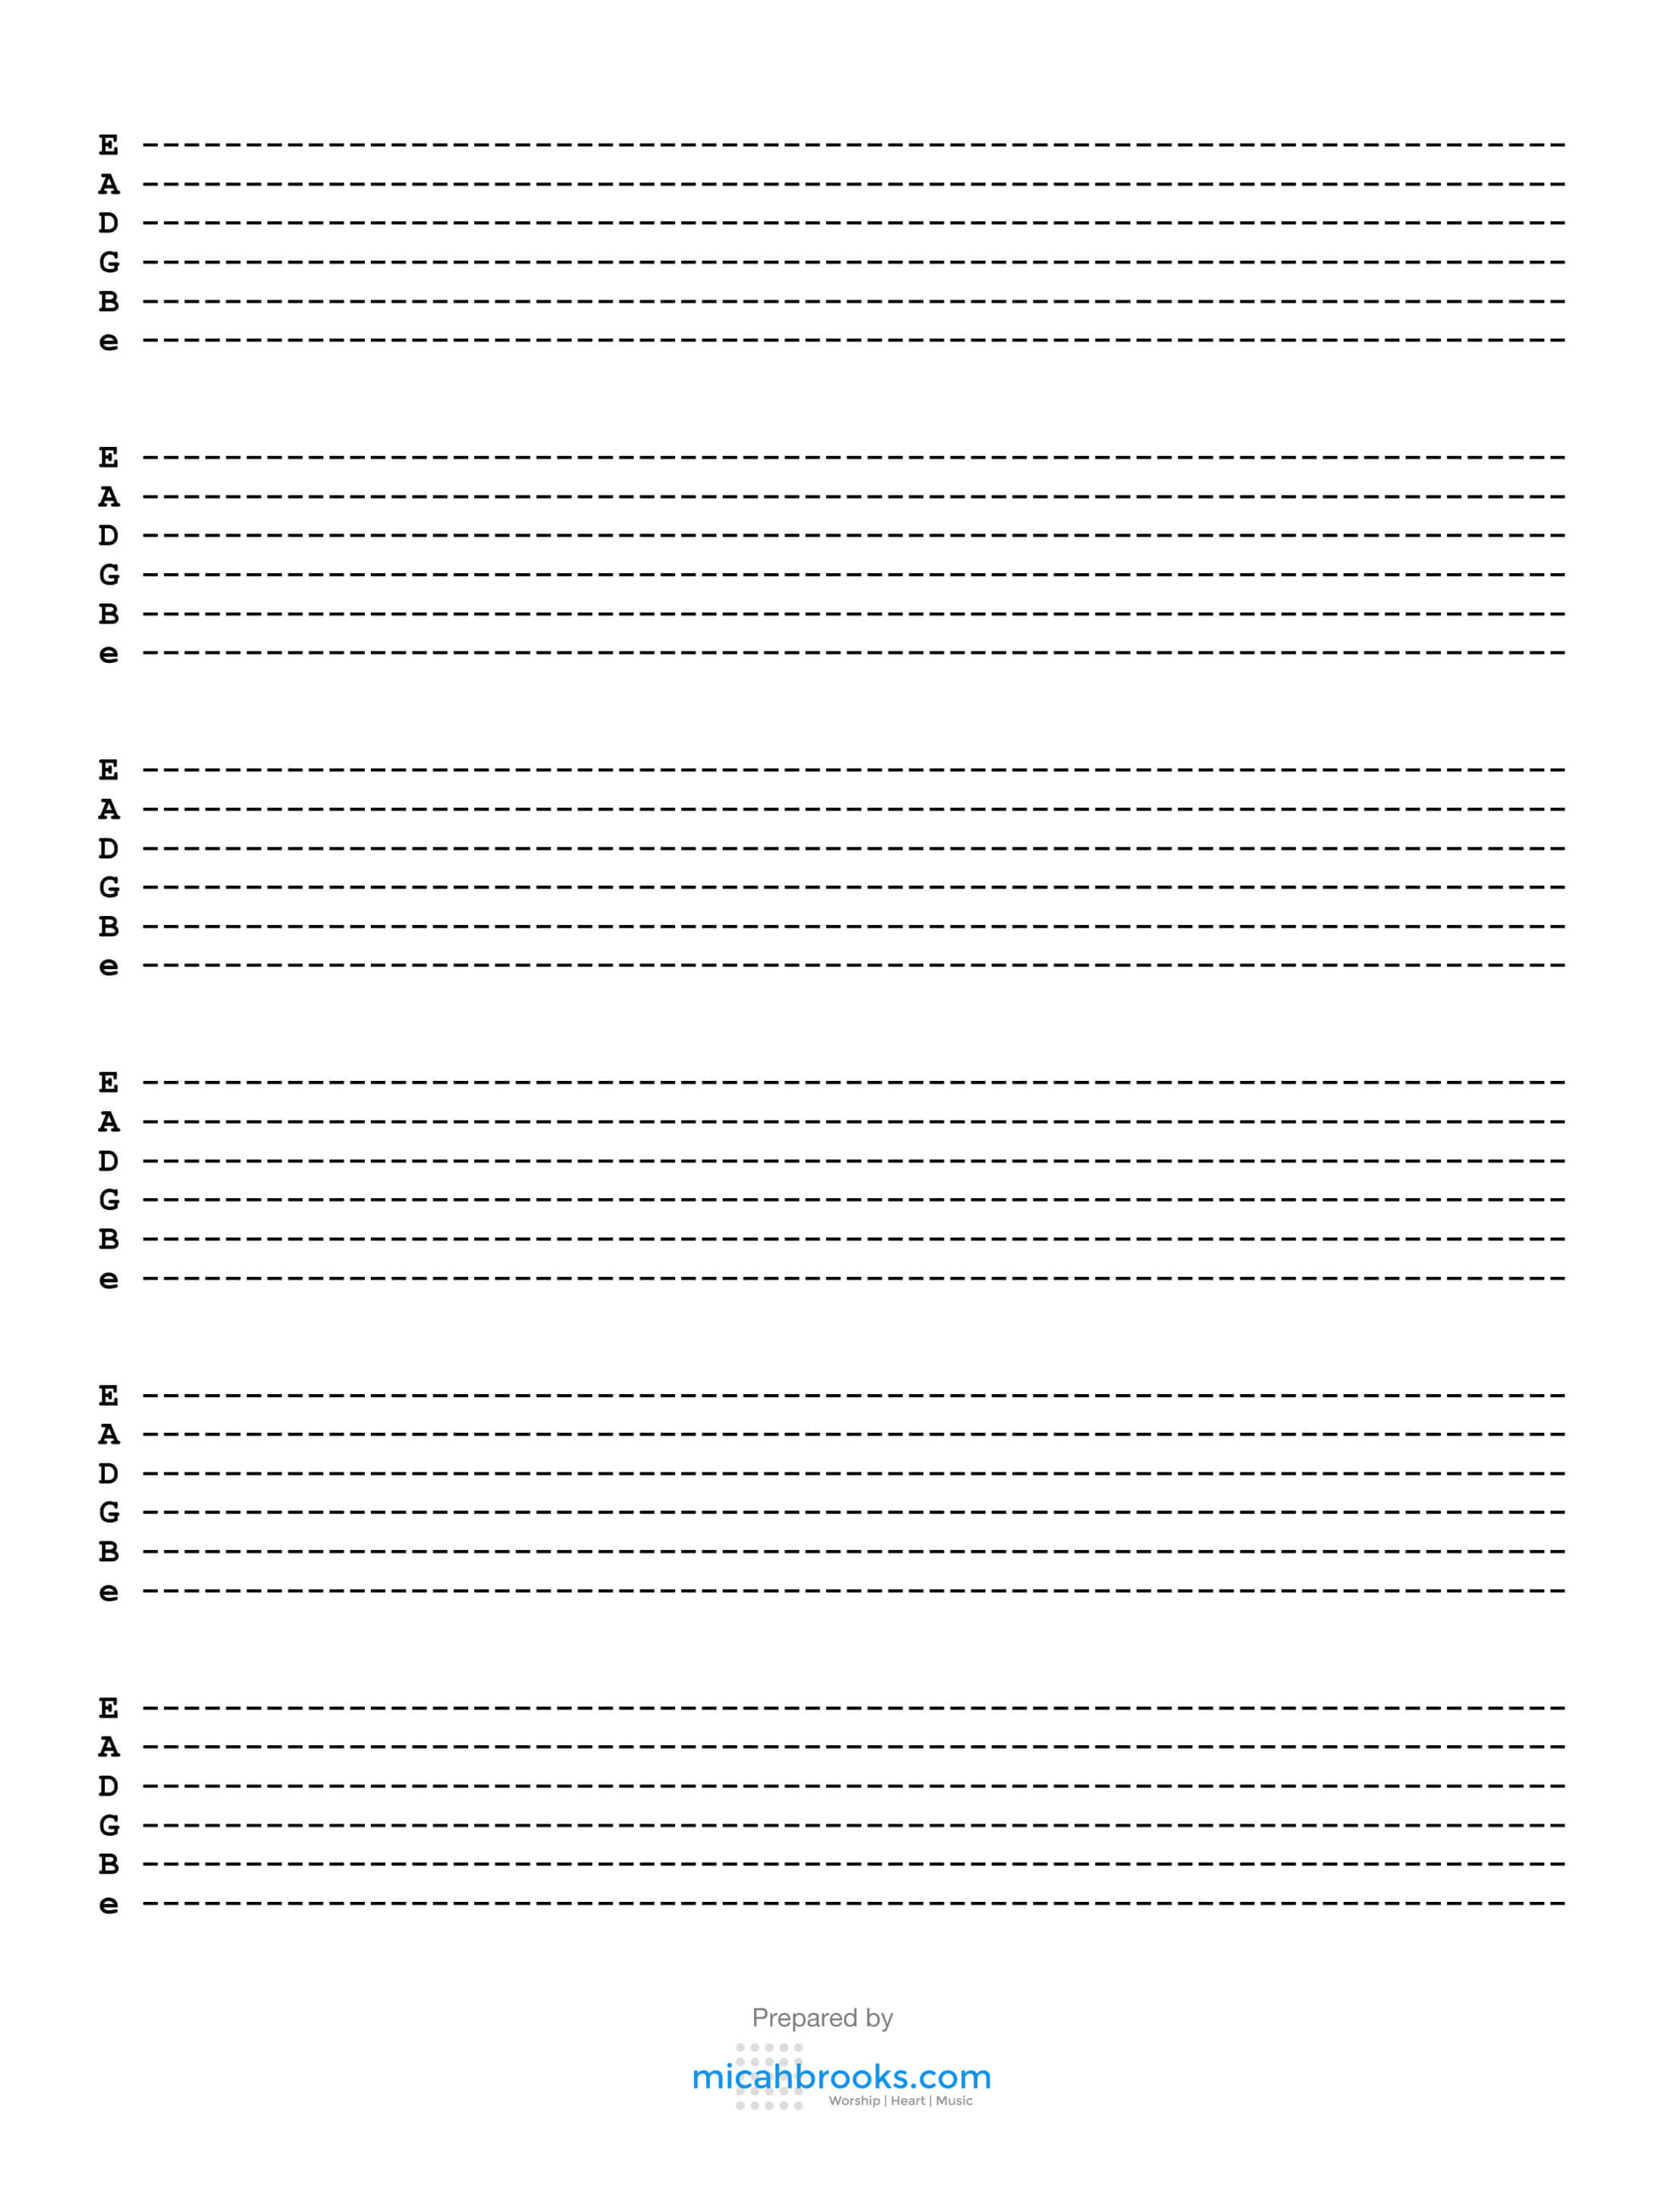 Free Stuff From Worship Publishing - Our Gift To You intended for Blank Sheet Music Template For Word